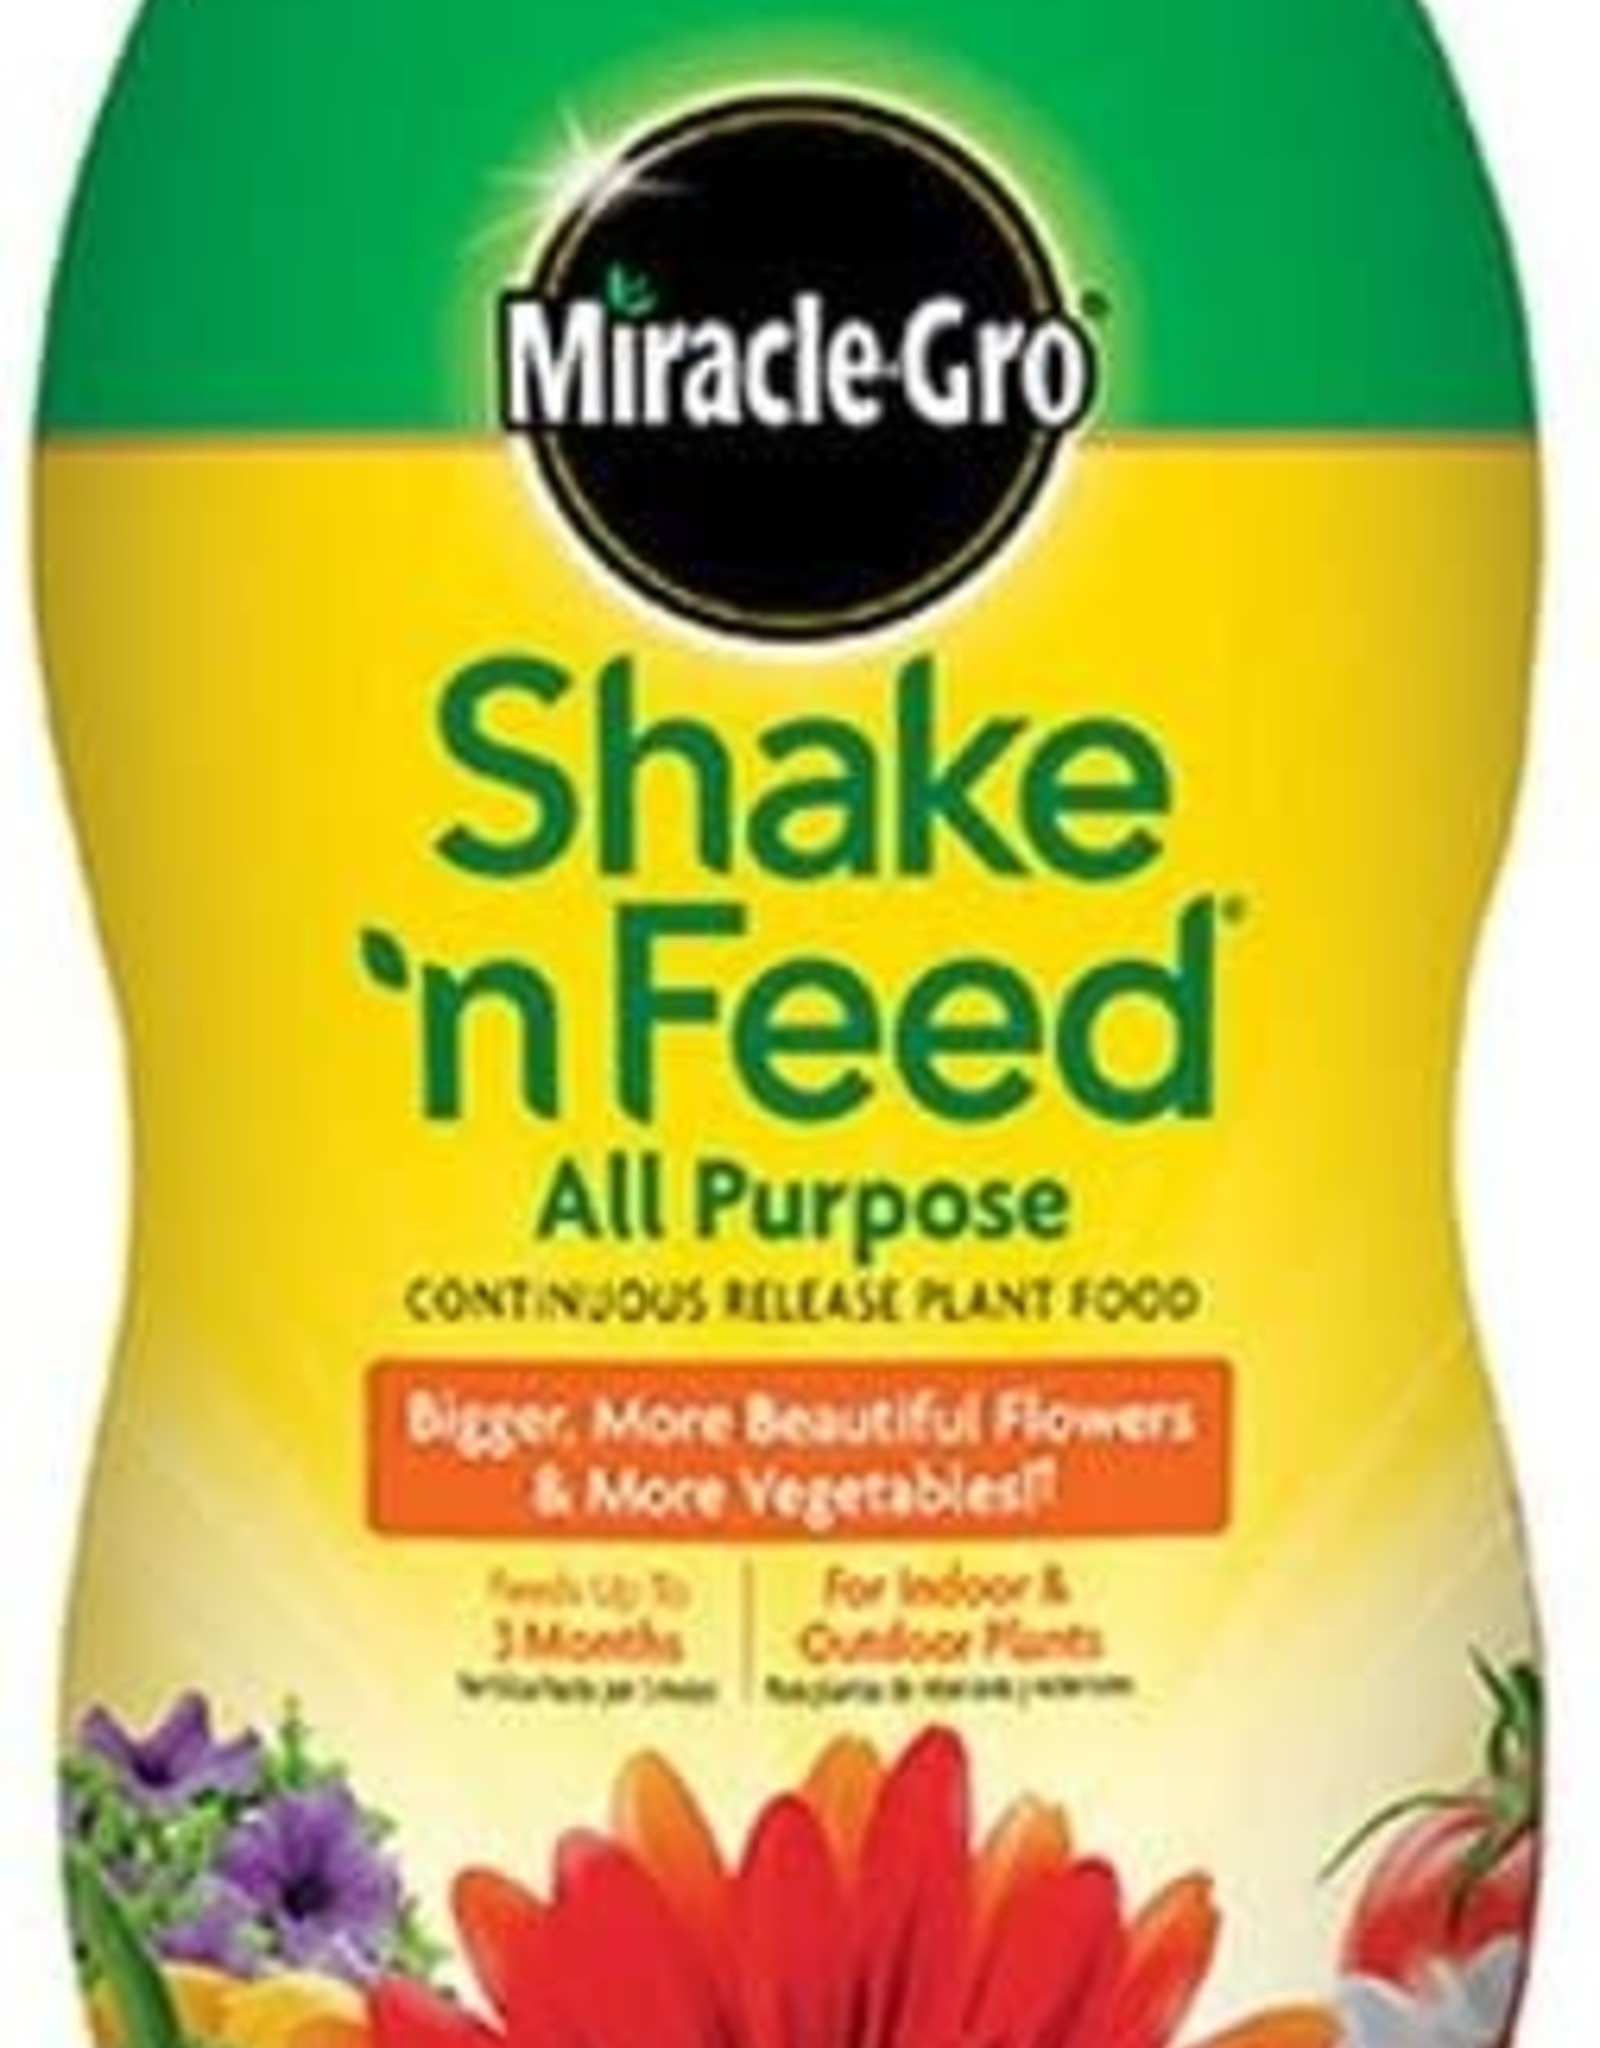 Miracle-Gro Shake 'n Feed Continuous Release Fertilizer 1.8lbs